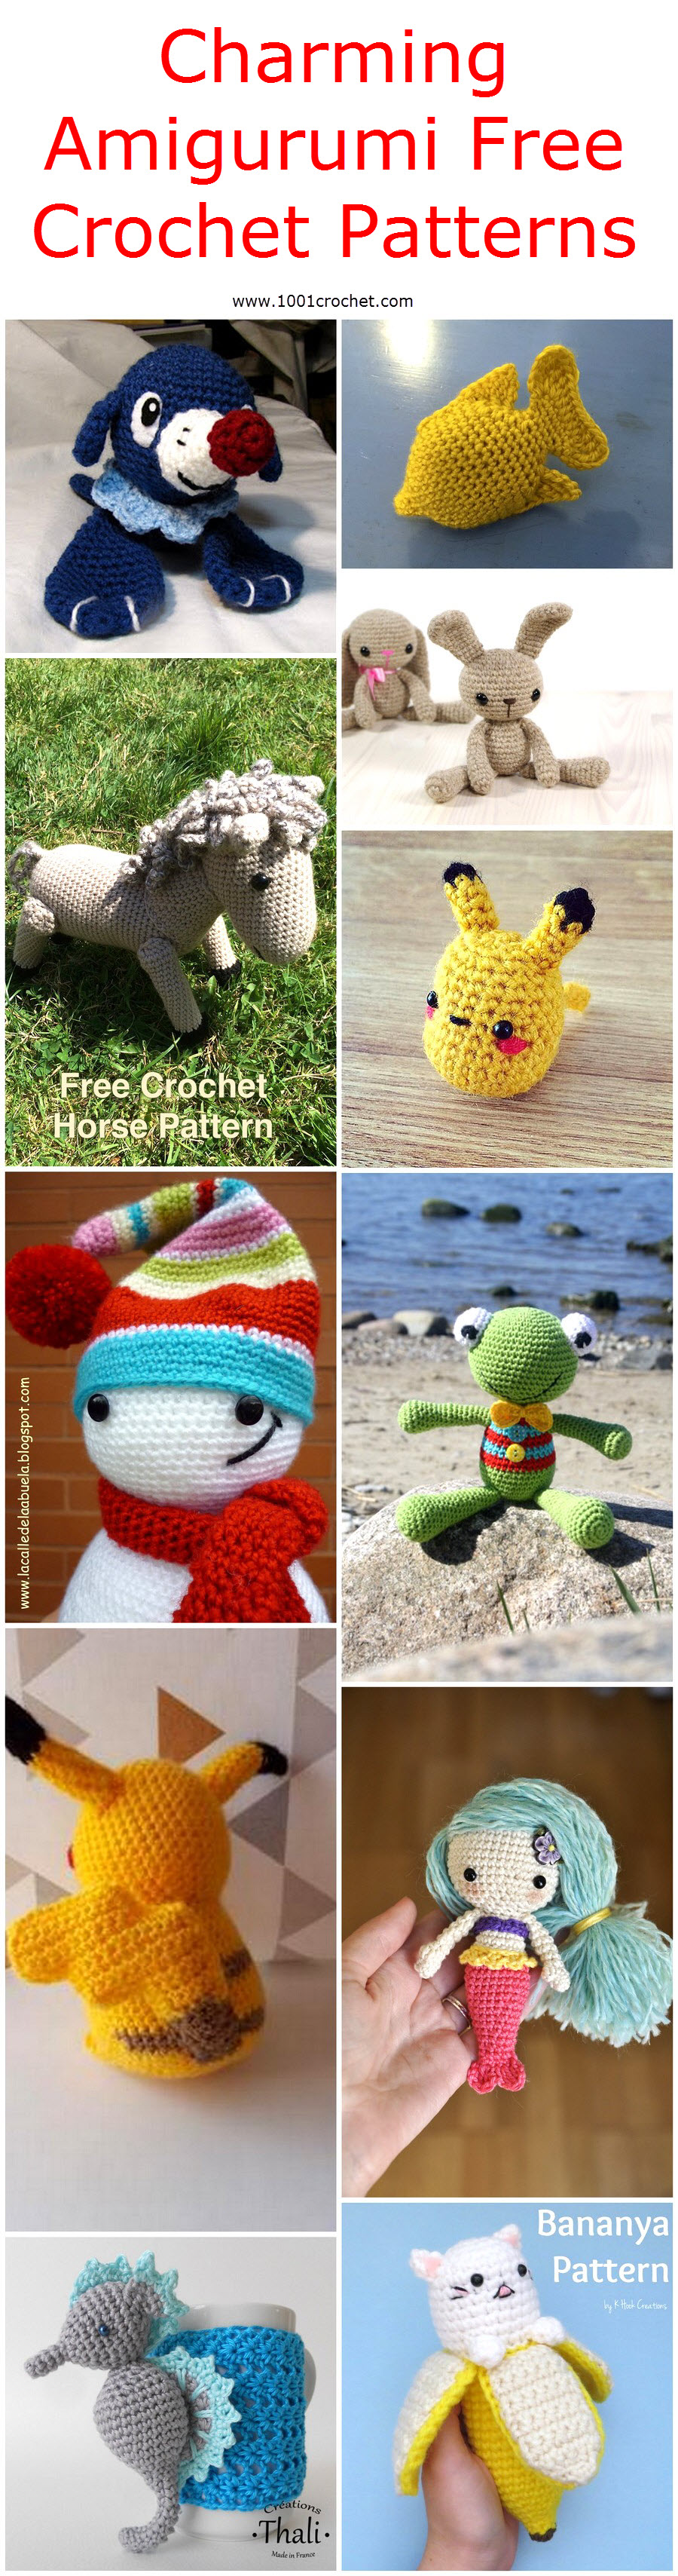 charming-amigurumi-free-crochet-patterns